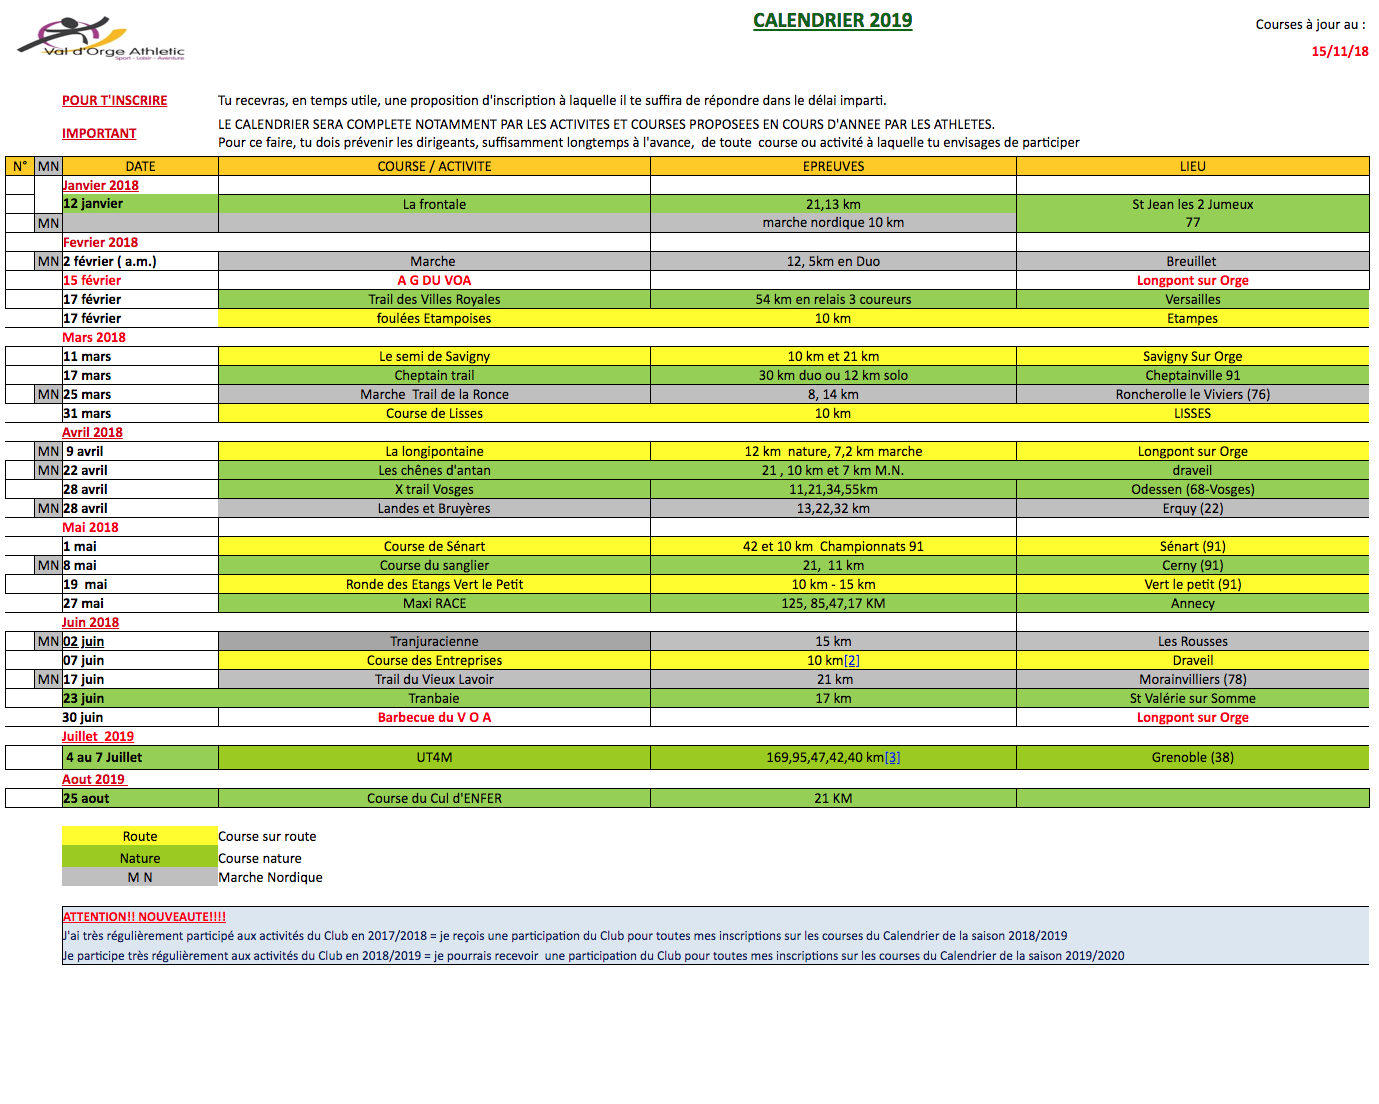 Calendrier Des Courses 2019.Calendrier Des Courses 2019 Val D Orge Athletic